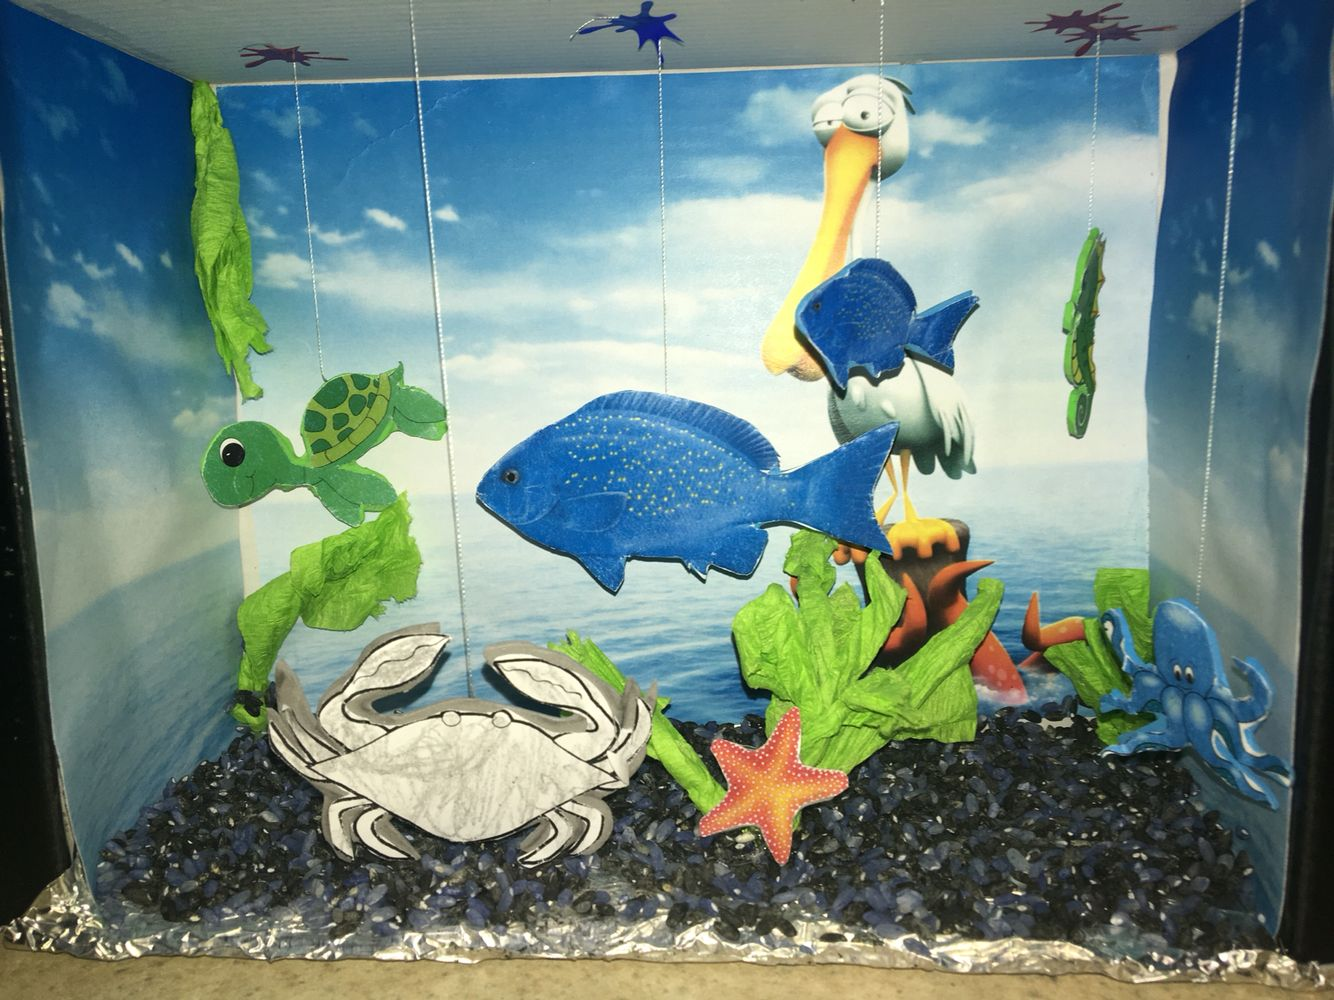 Fish tank in the floor - Recyclable Biodegradeable Material Fish Tank For Preschool Shoe Box Crepe Paper Plants